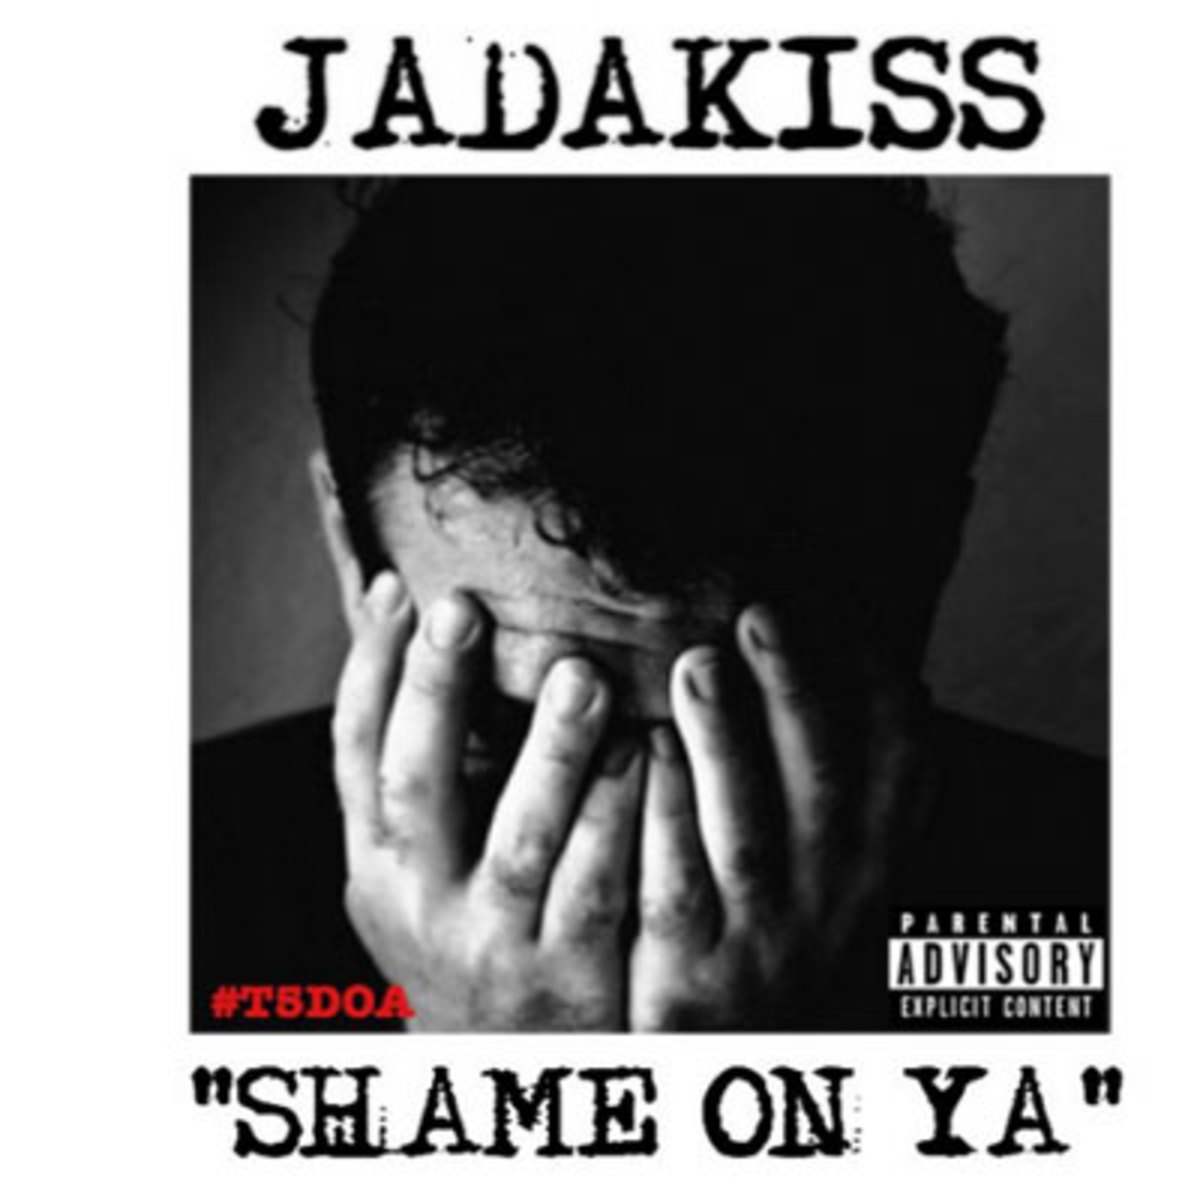 jadakiss-shame-on-ya.jpg